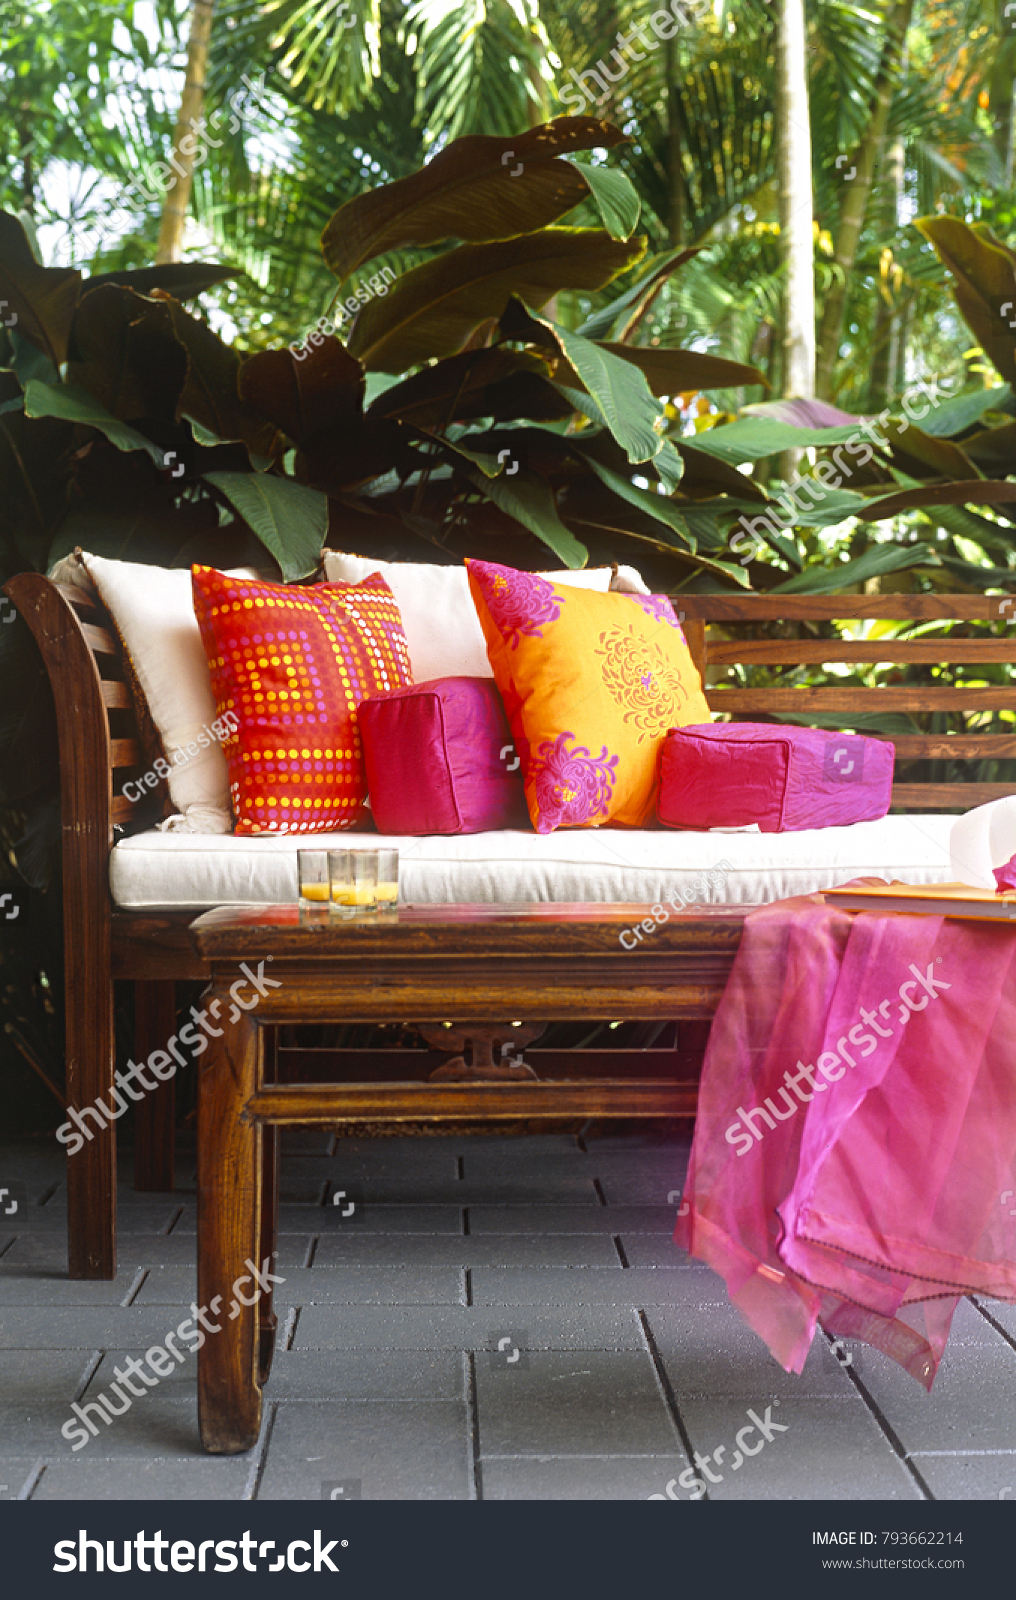 Balinese style teak outdoor furniture in courtyard with lush tropical garden behind